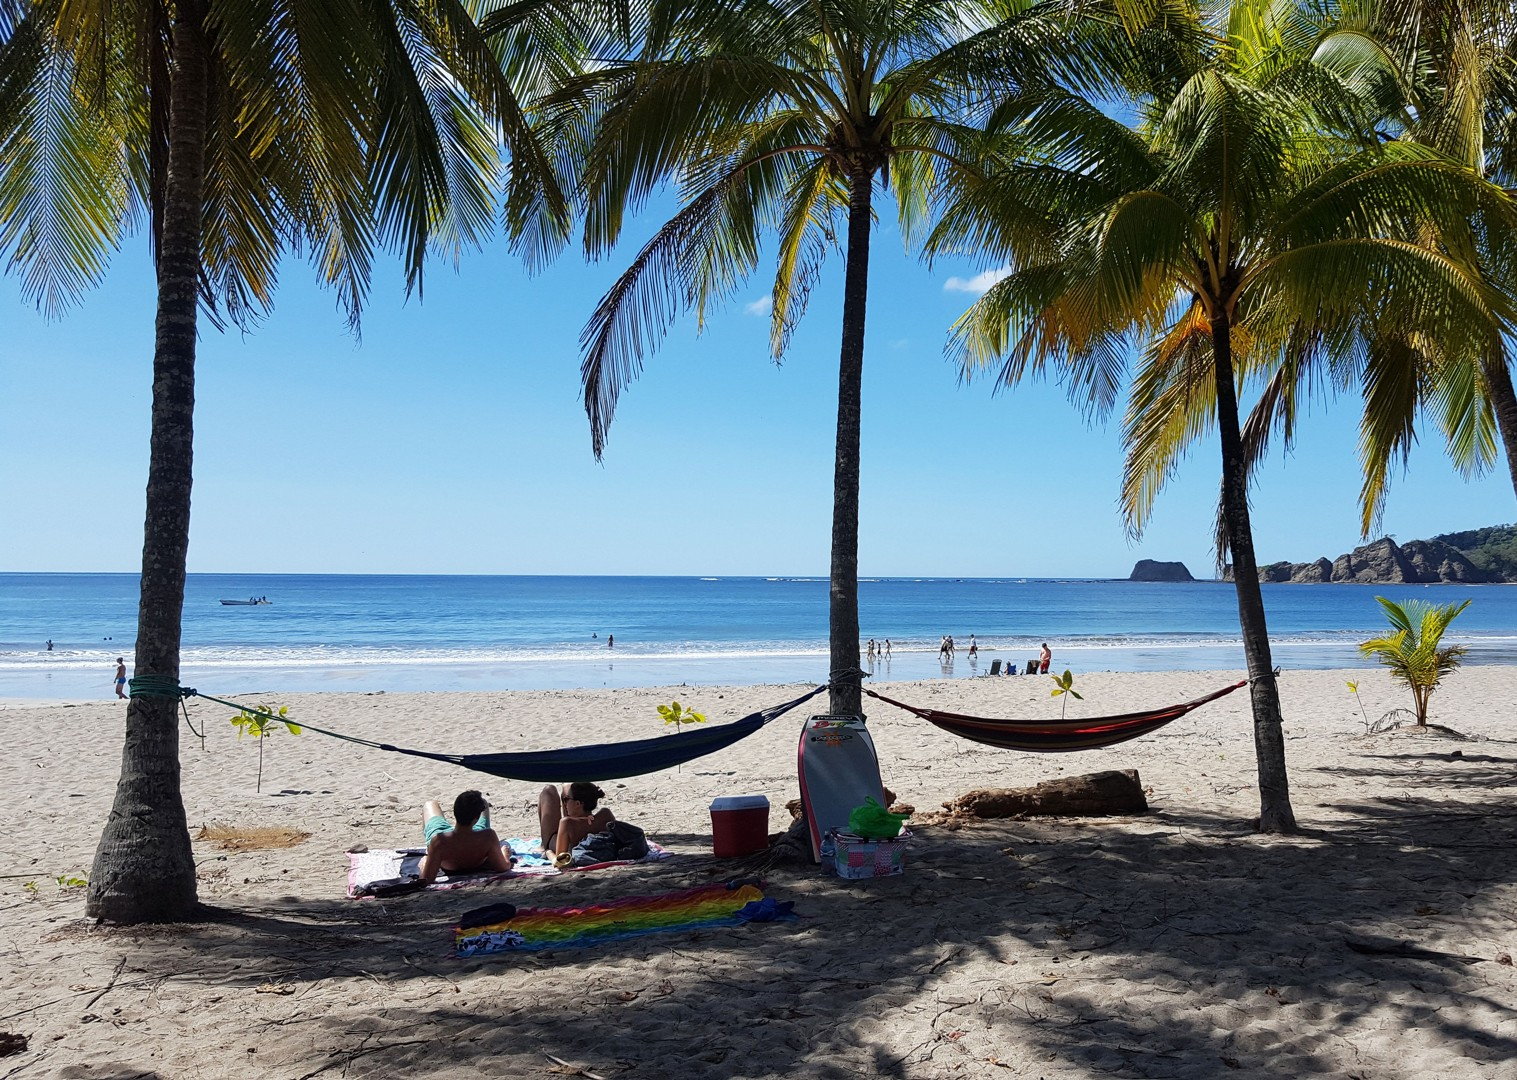 beach-costa-rica-family-guided-cycling-holiday.jpg - Costa Rica - Volcanoes and Valleys - Guided Family Cycling Holiday - Family Cycling